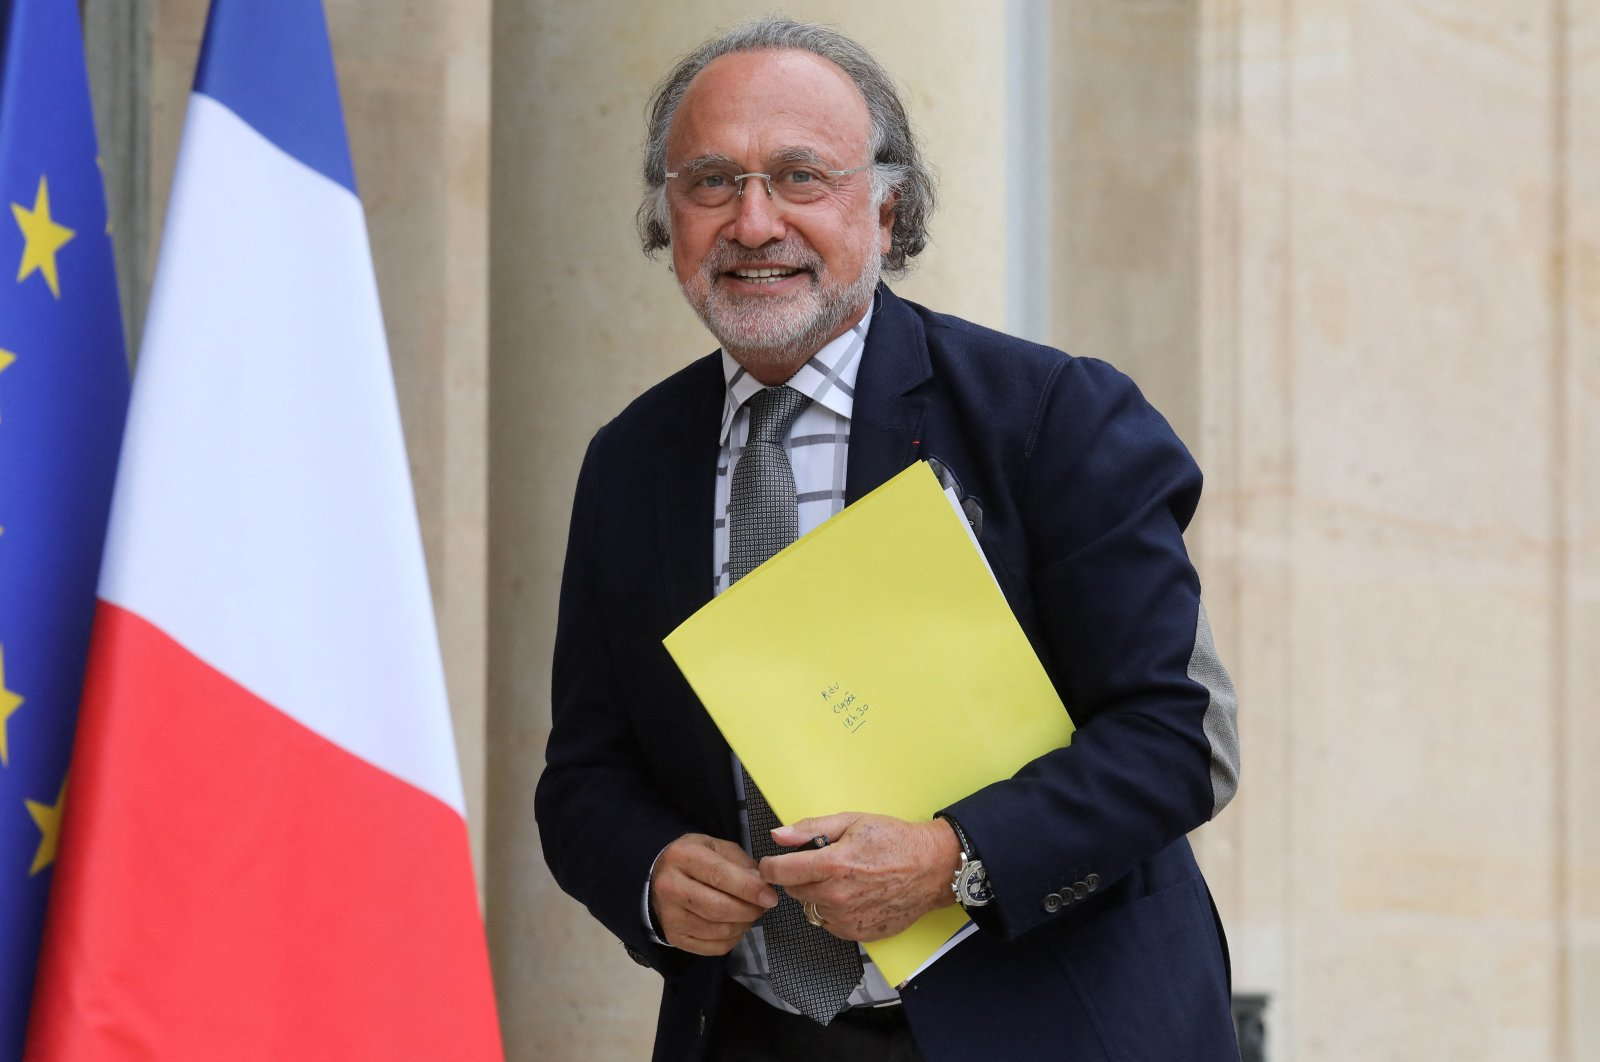 French right-wing Les Republicains (The Republicans, LR) party's Member of Parliament Olivier Dassault poses as he arrives at the Elysee Palace in Paris on June 19, 2019. (AFP File Photo)